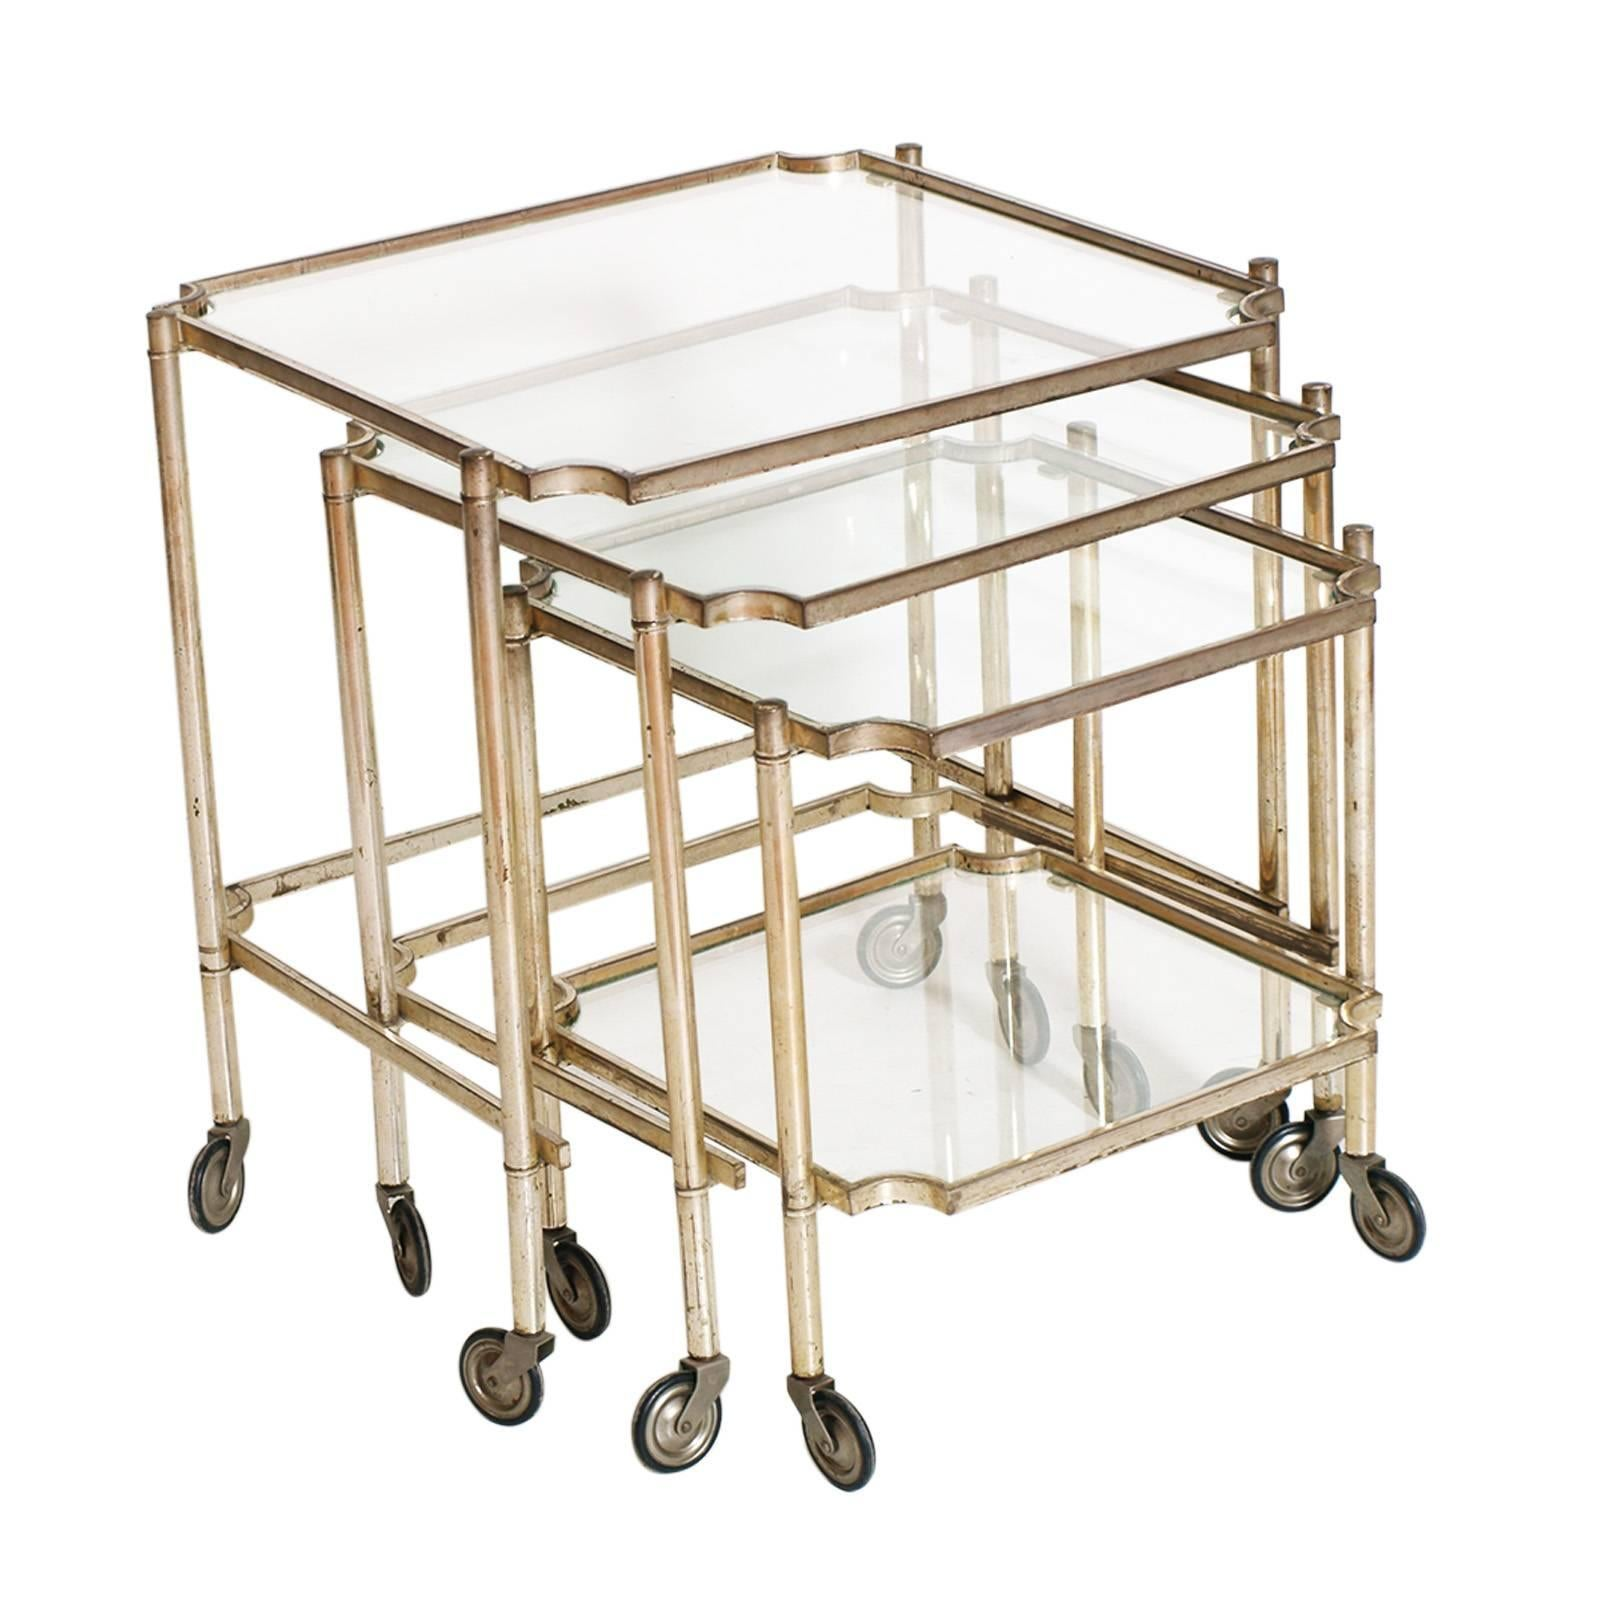 1930s Italy Neoclassic Silver Brass Rolling Nesting Tables, Maison Jansen  Style